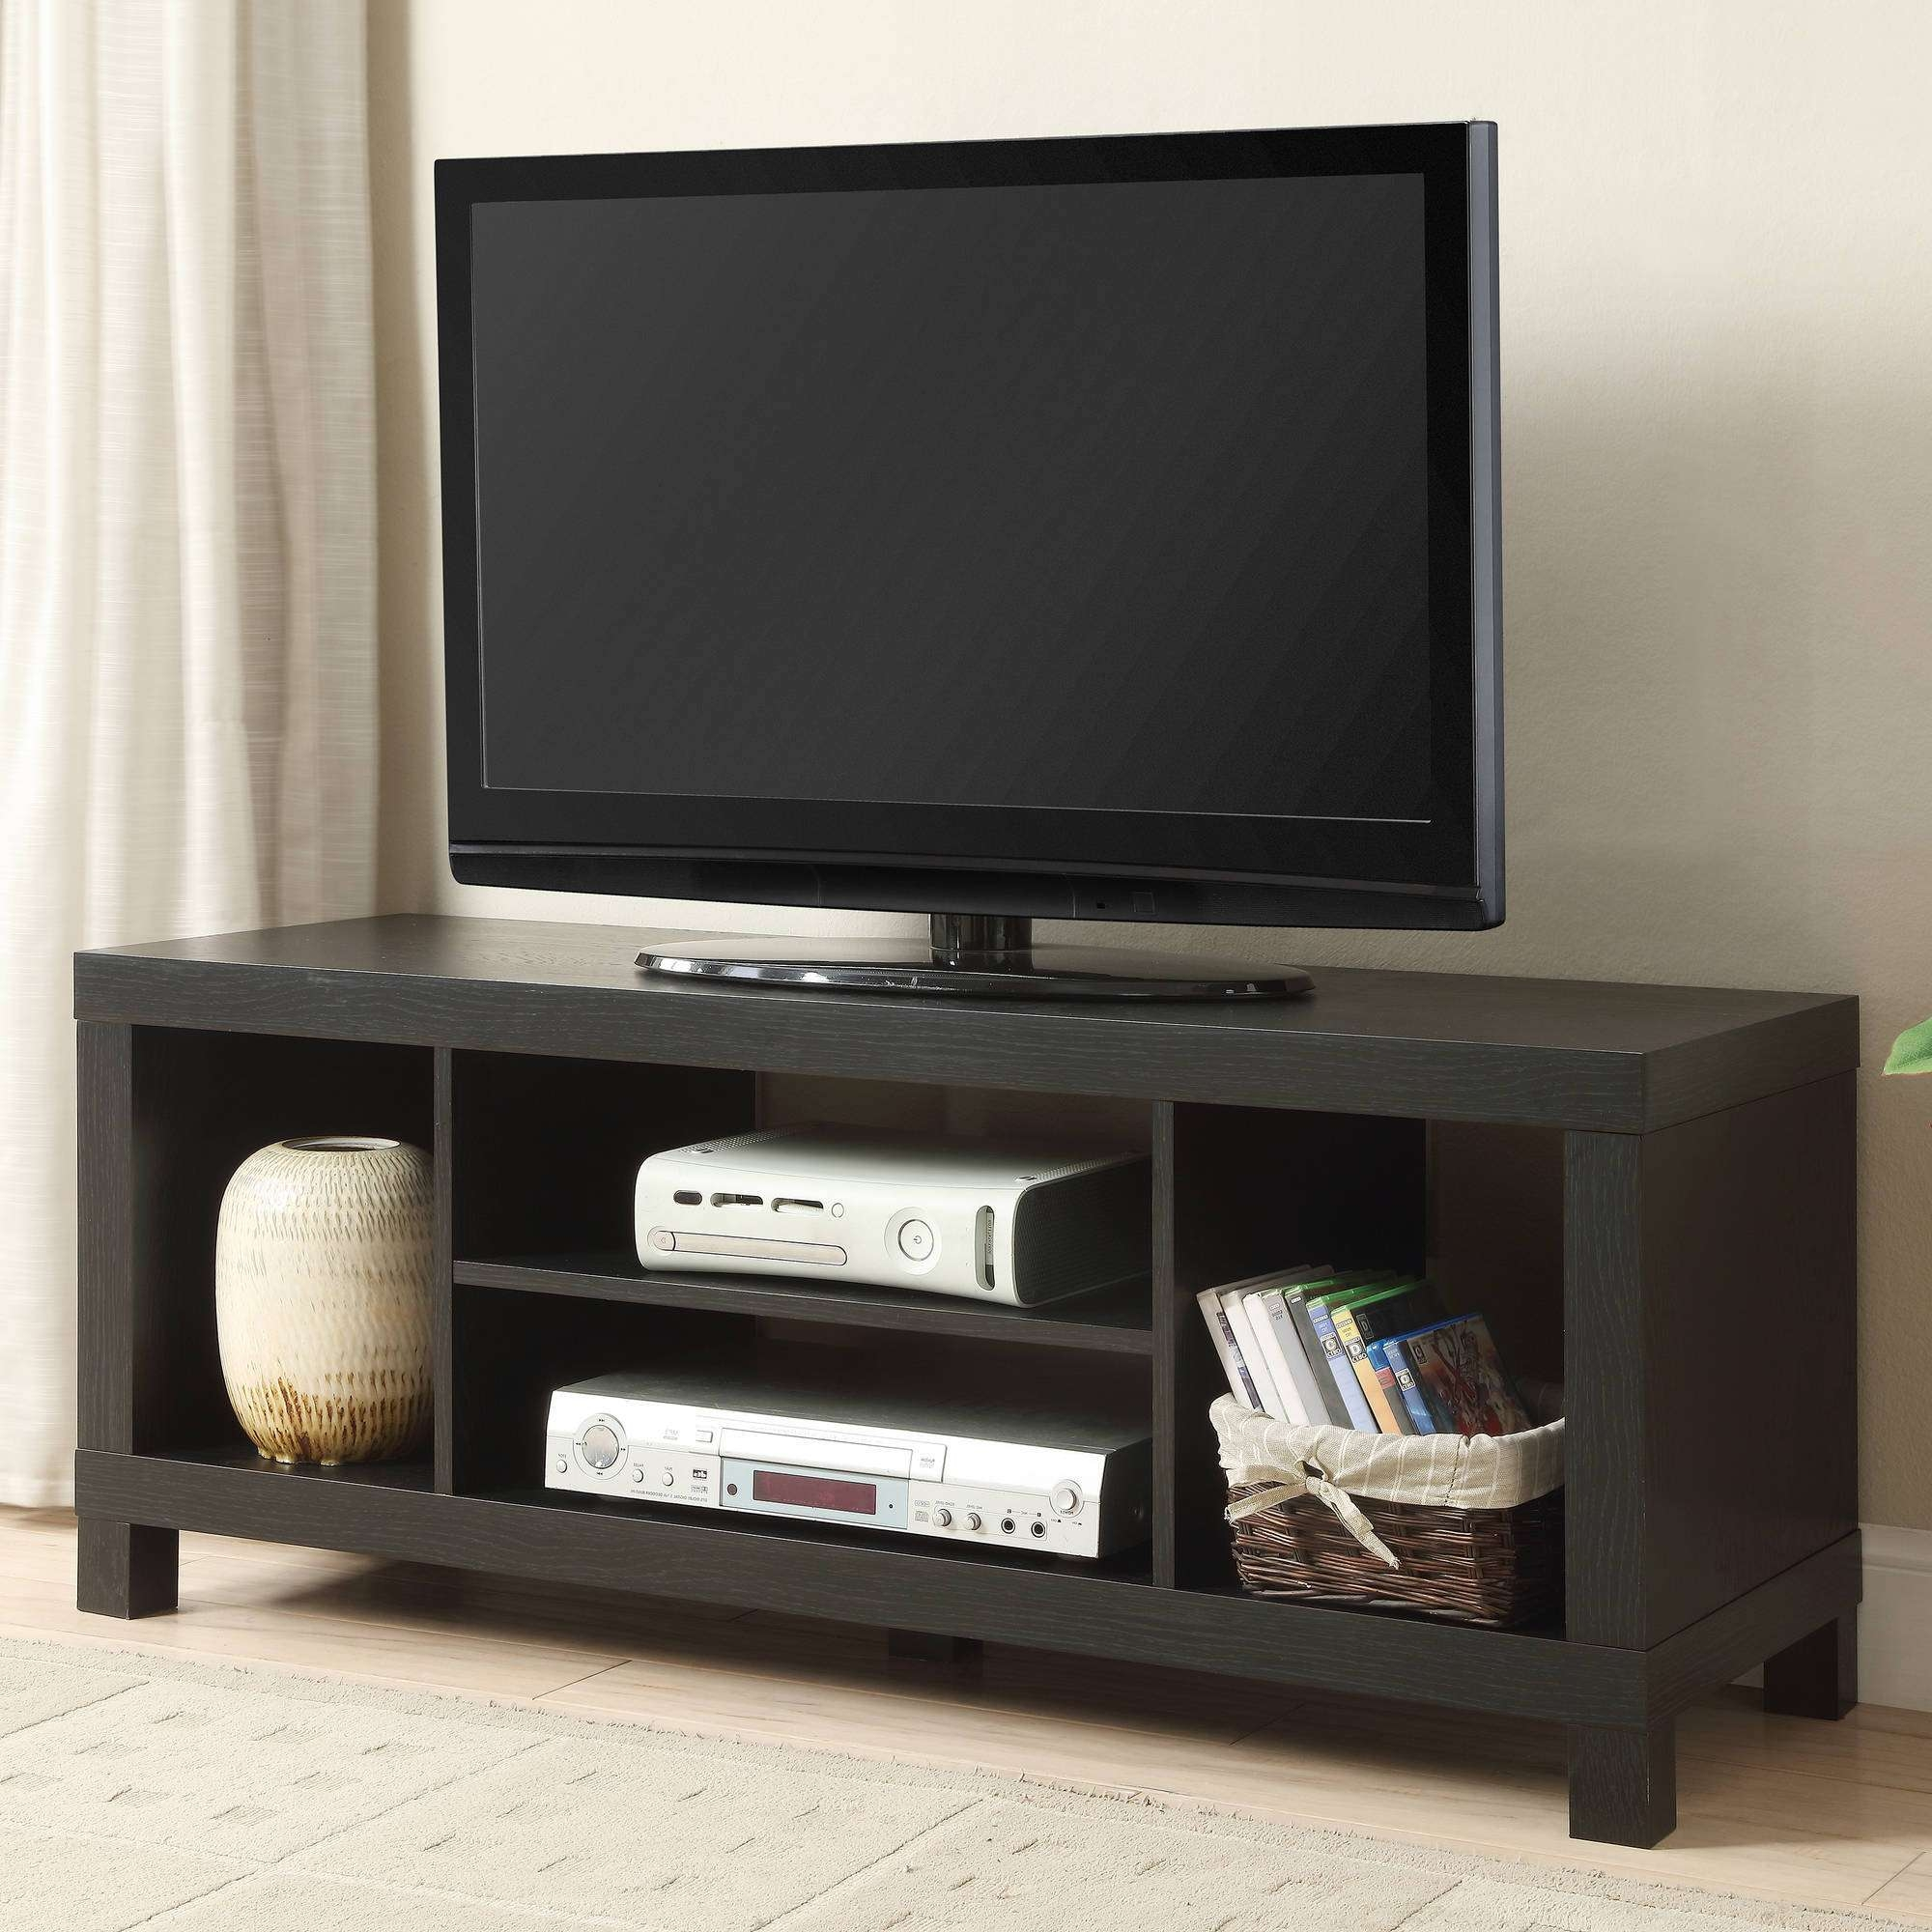 Tv Stands – Walmart With Tv Stands For 50 Inch Tvs (View 8 of 15)